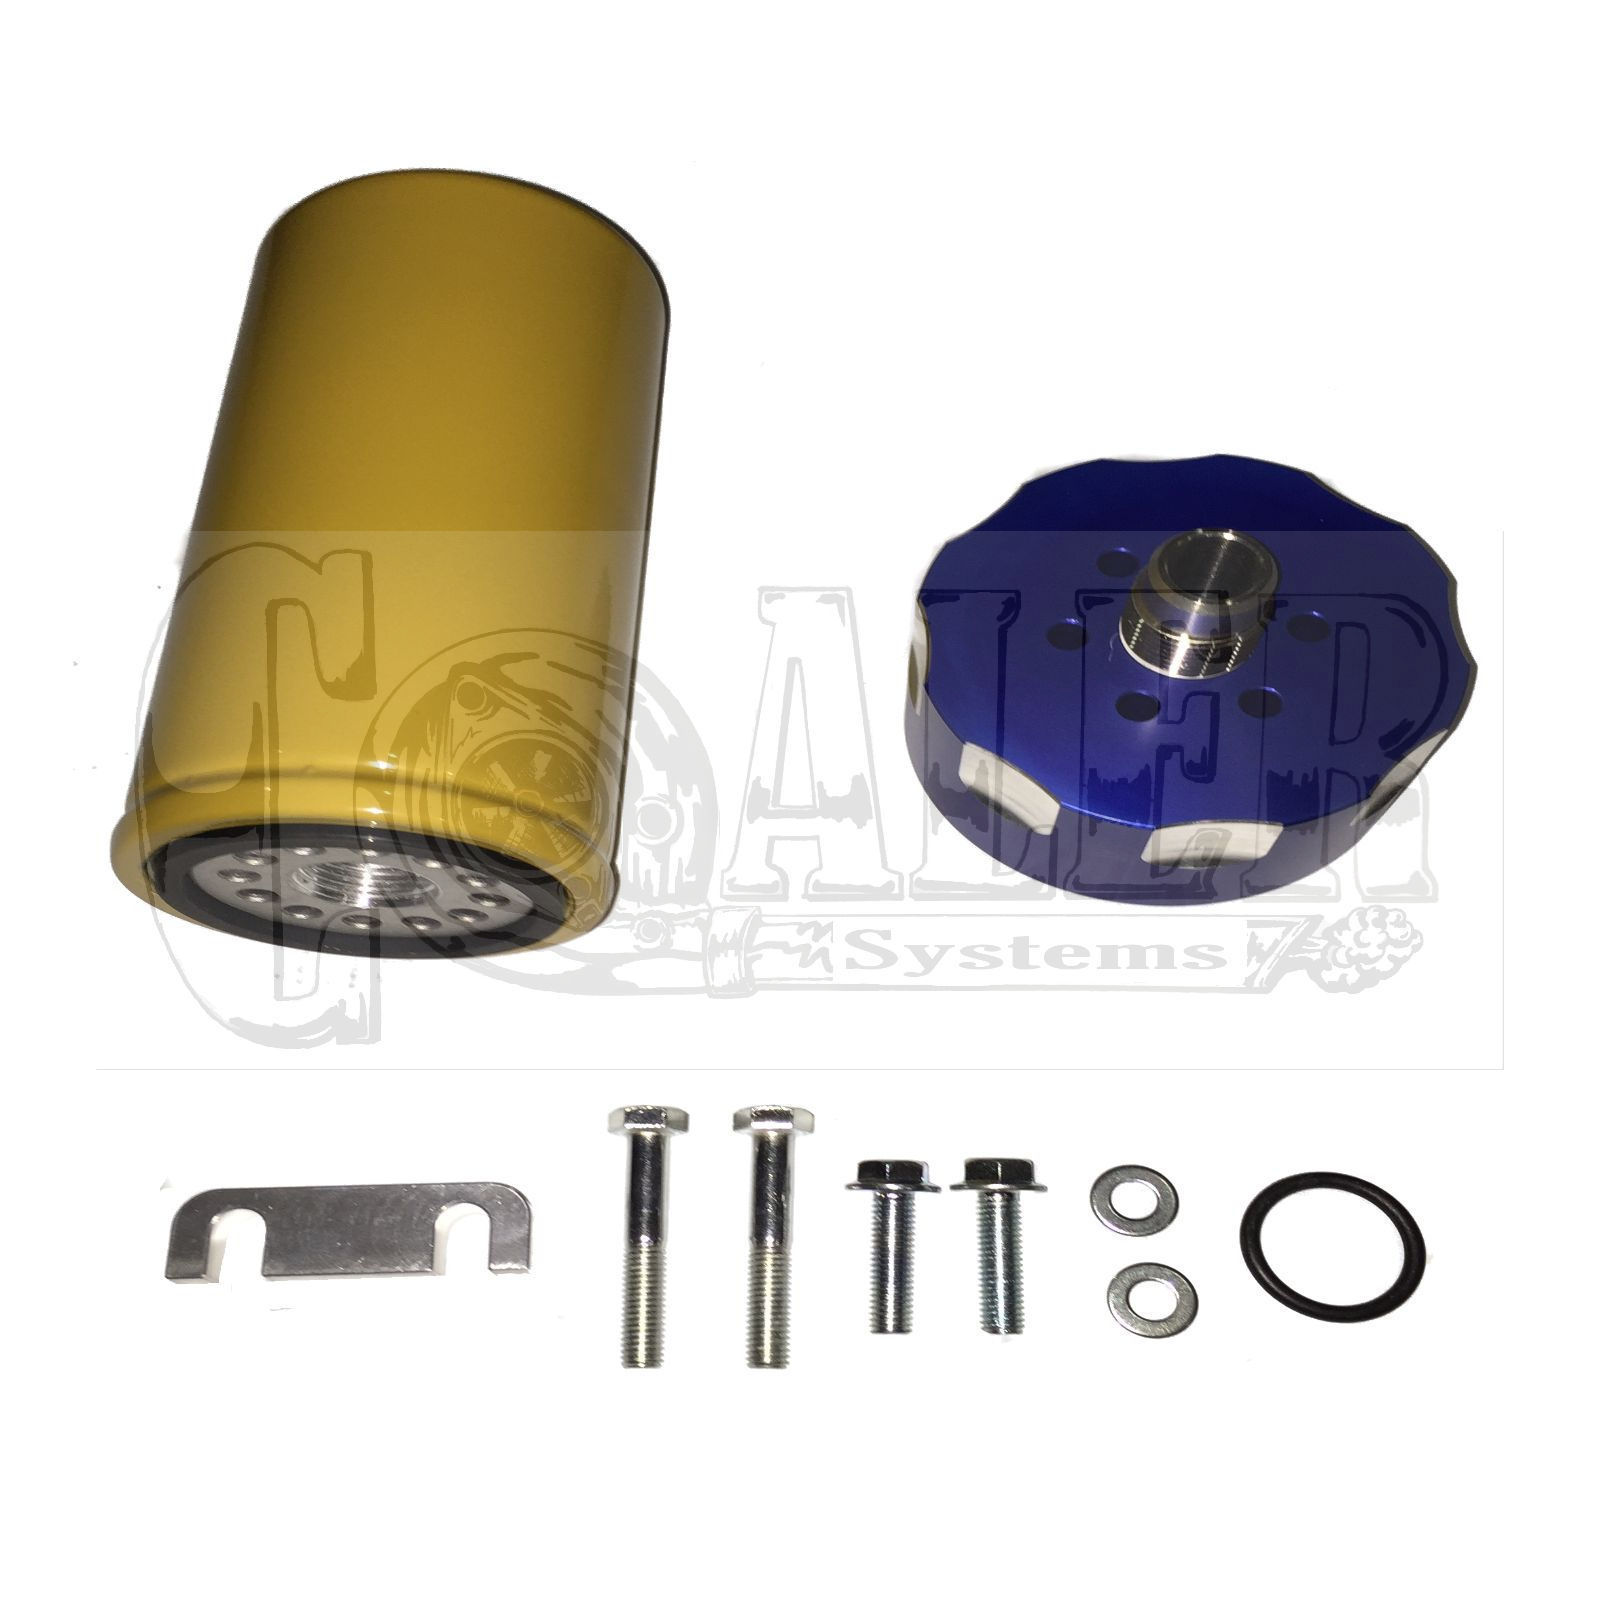 2001 - 2015 Fuel Filter 6.6 Duramax Diesel Adapter Kit - Coaler Systems |  Diesel and Automobile Specialty Parts